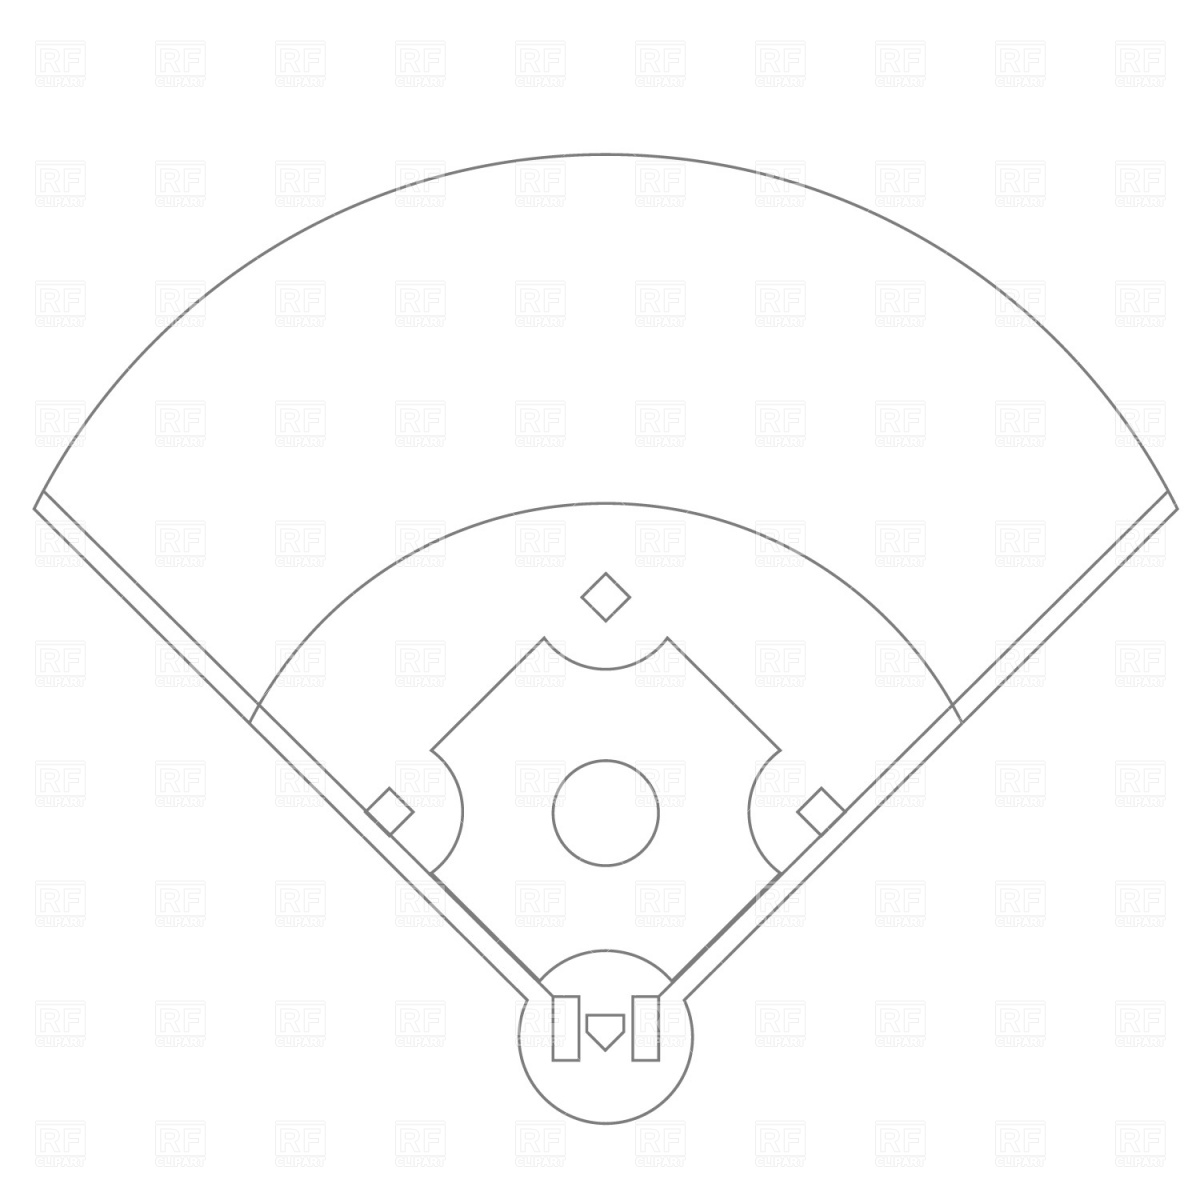 Drawn baseball 6 Clip Vector Outline New